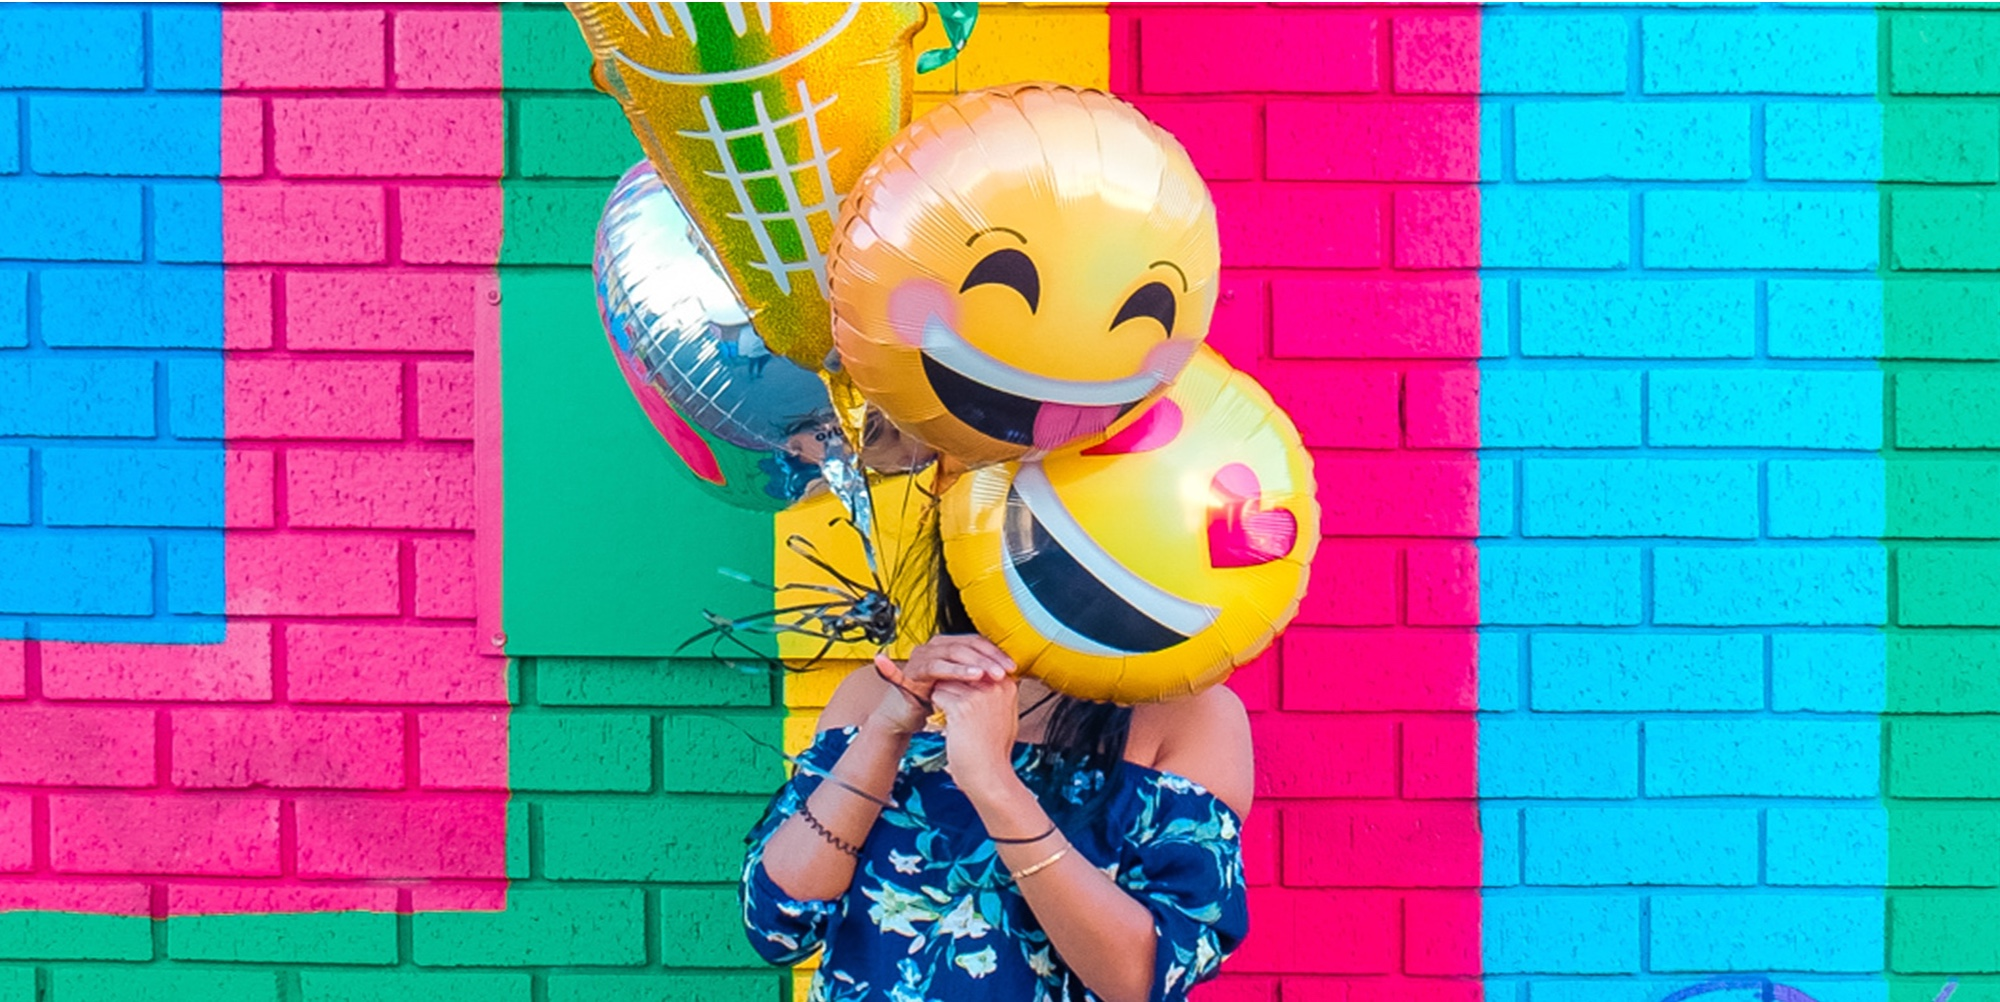 Colourful image of person holding emoji balloons.